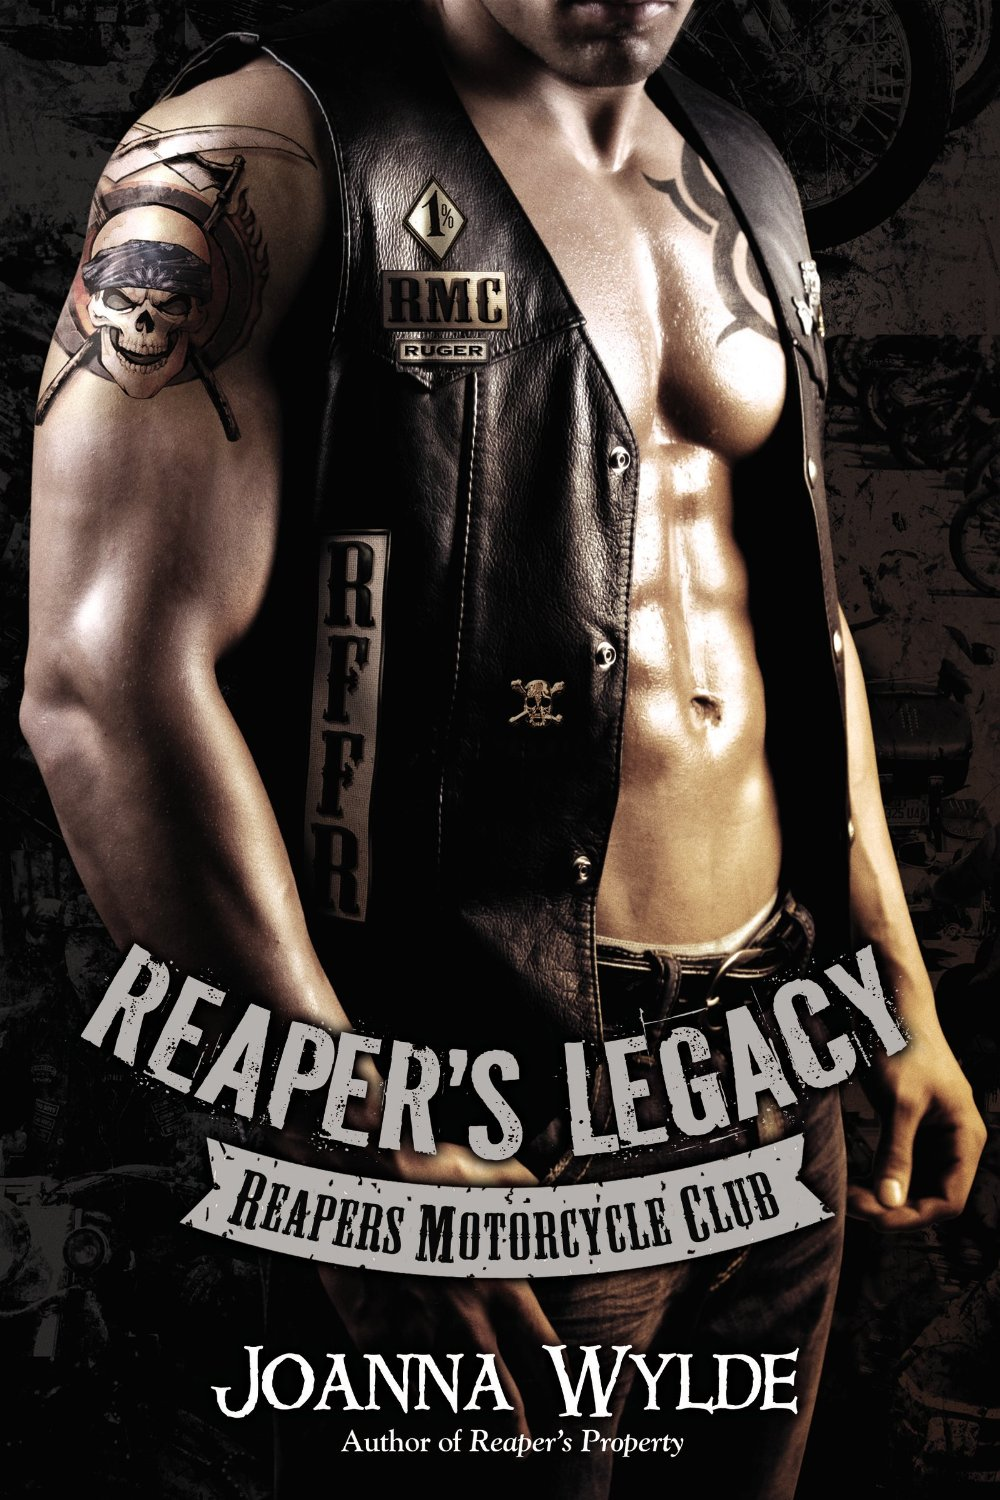 Reaper's Legacy (Reapers Motorcycle Club) Book Cover